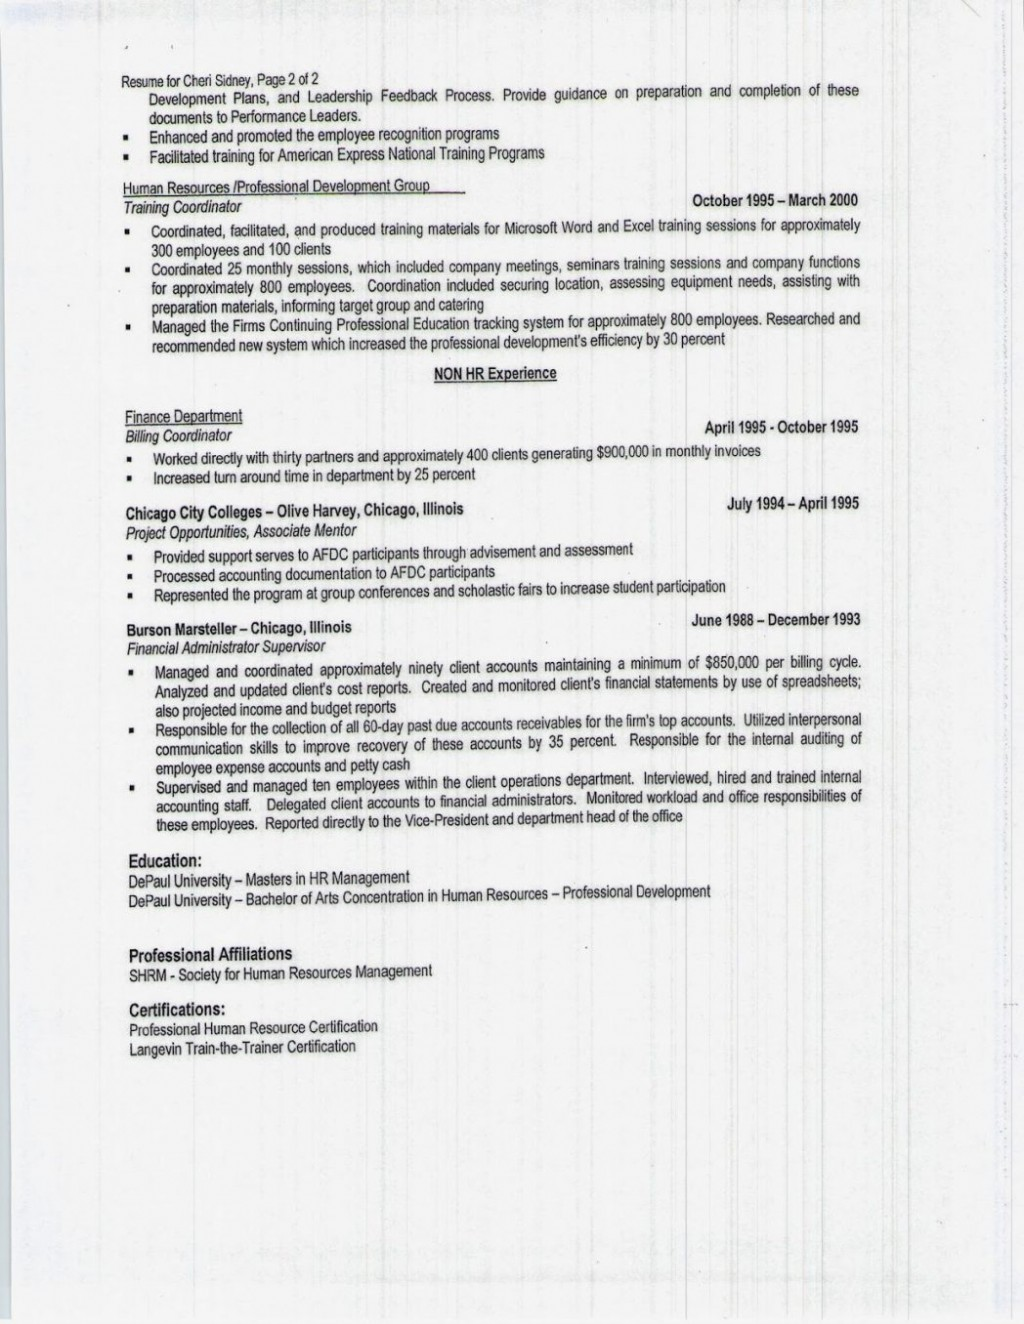 016 Essay Example No Scholarships Scholarship And Travel College School Sidne Colleges With Requirement Texas 1048x1356 Without Stunning Essays Requirements Required In Large